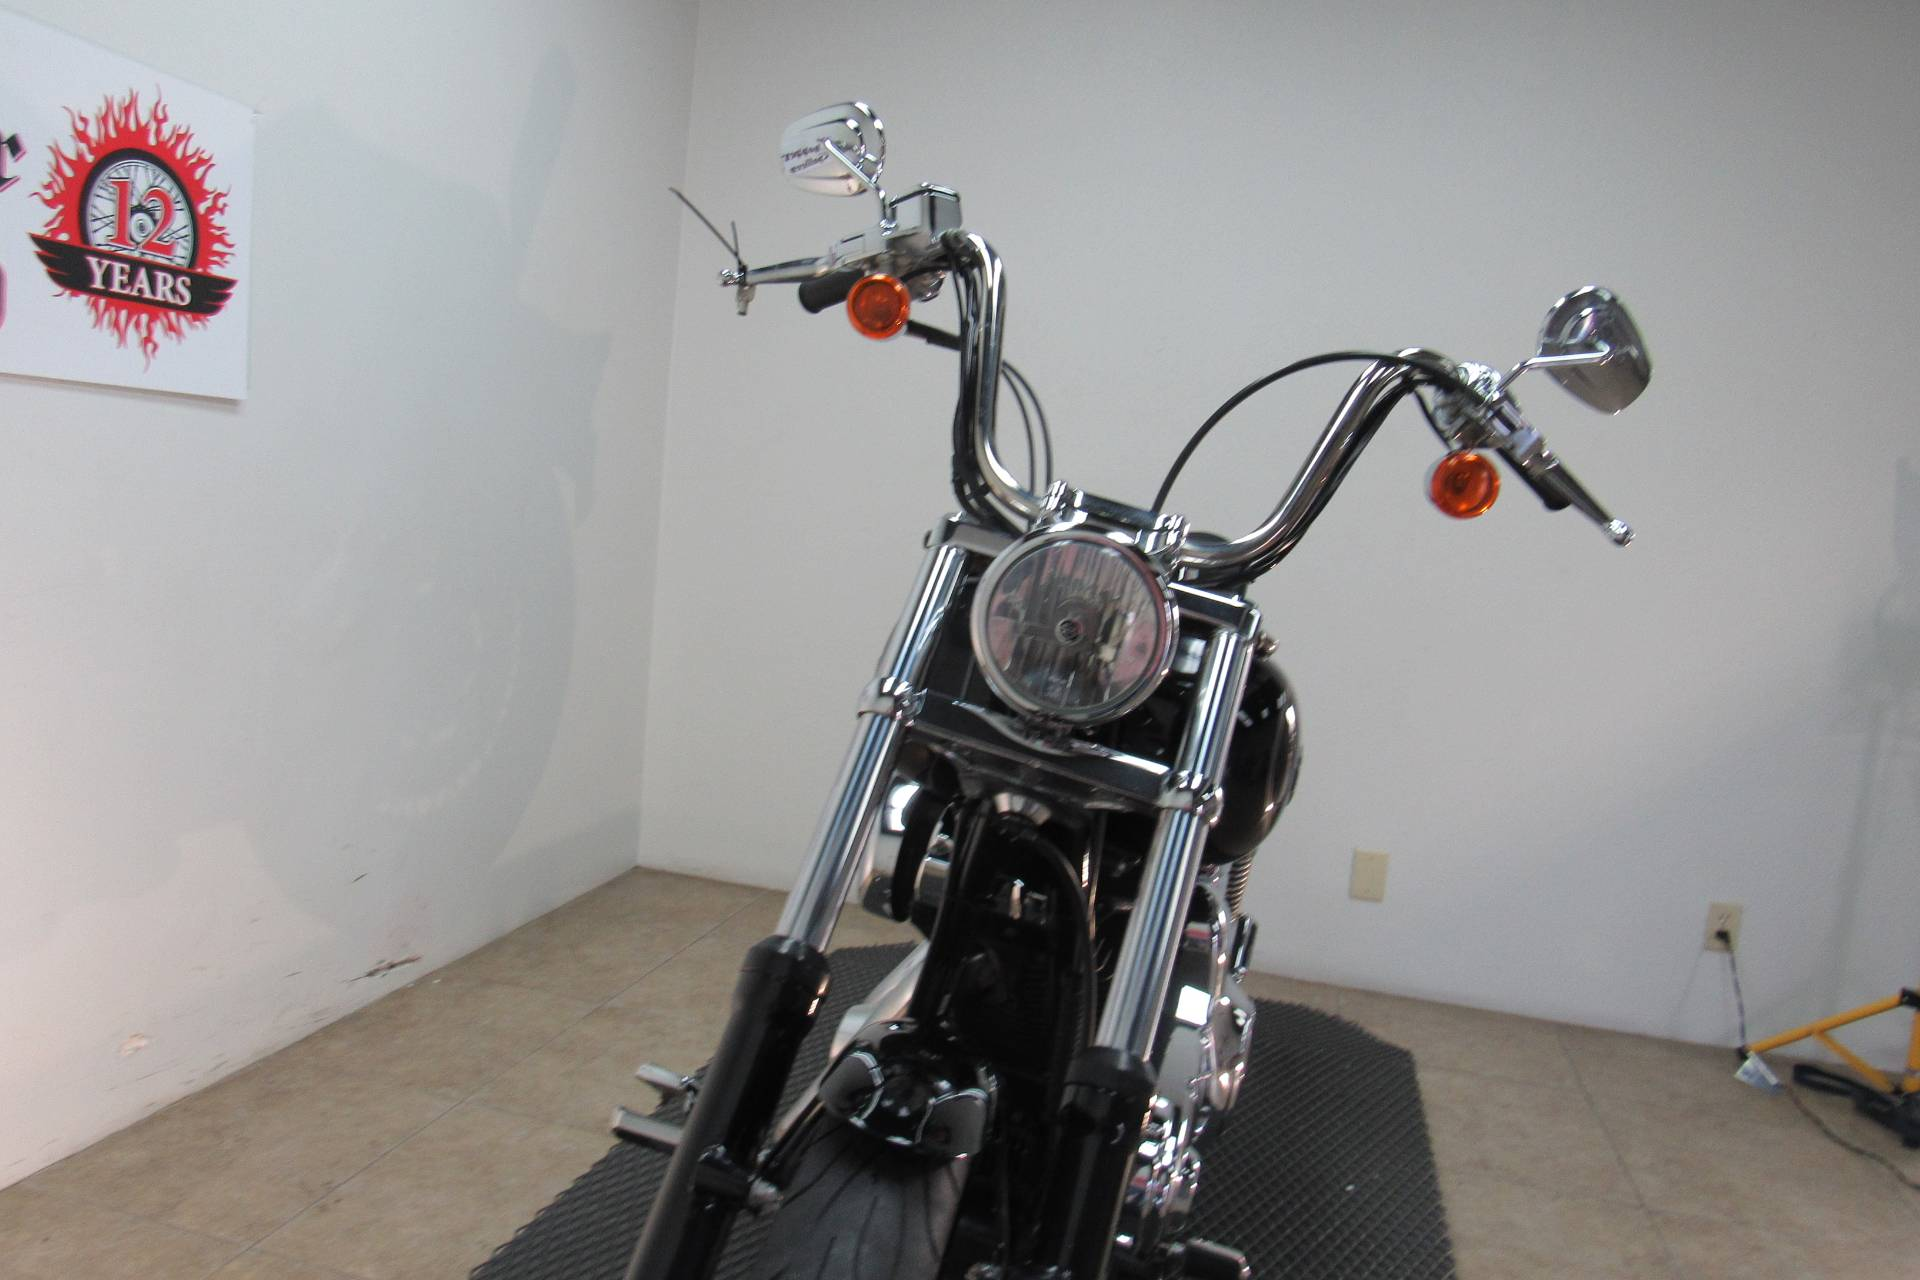 2005 Harley-Davidson FXDWG/FXDWGI Dyna Wide Glide® in Temecula, California - Photo 22